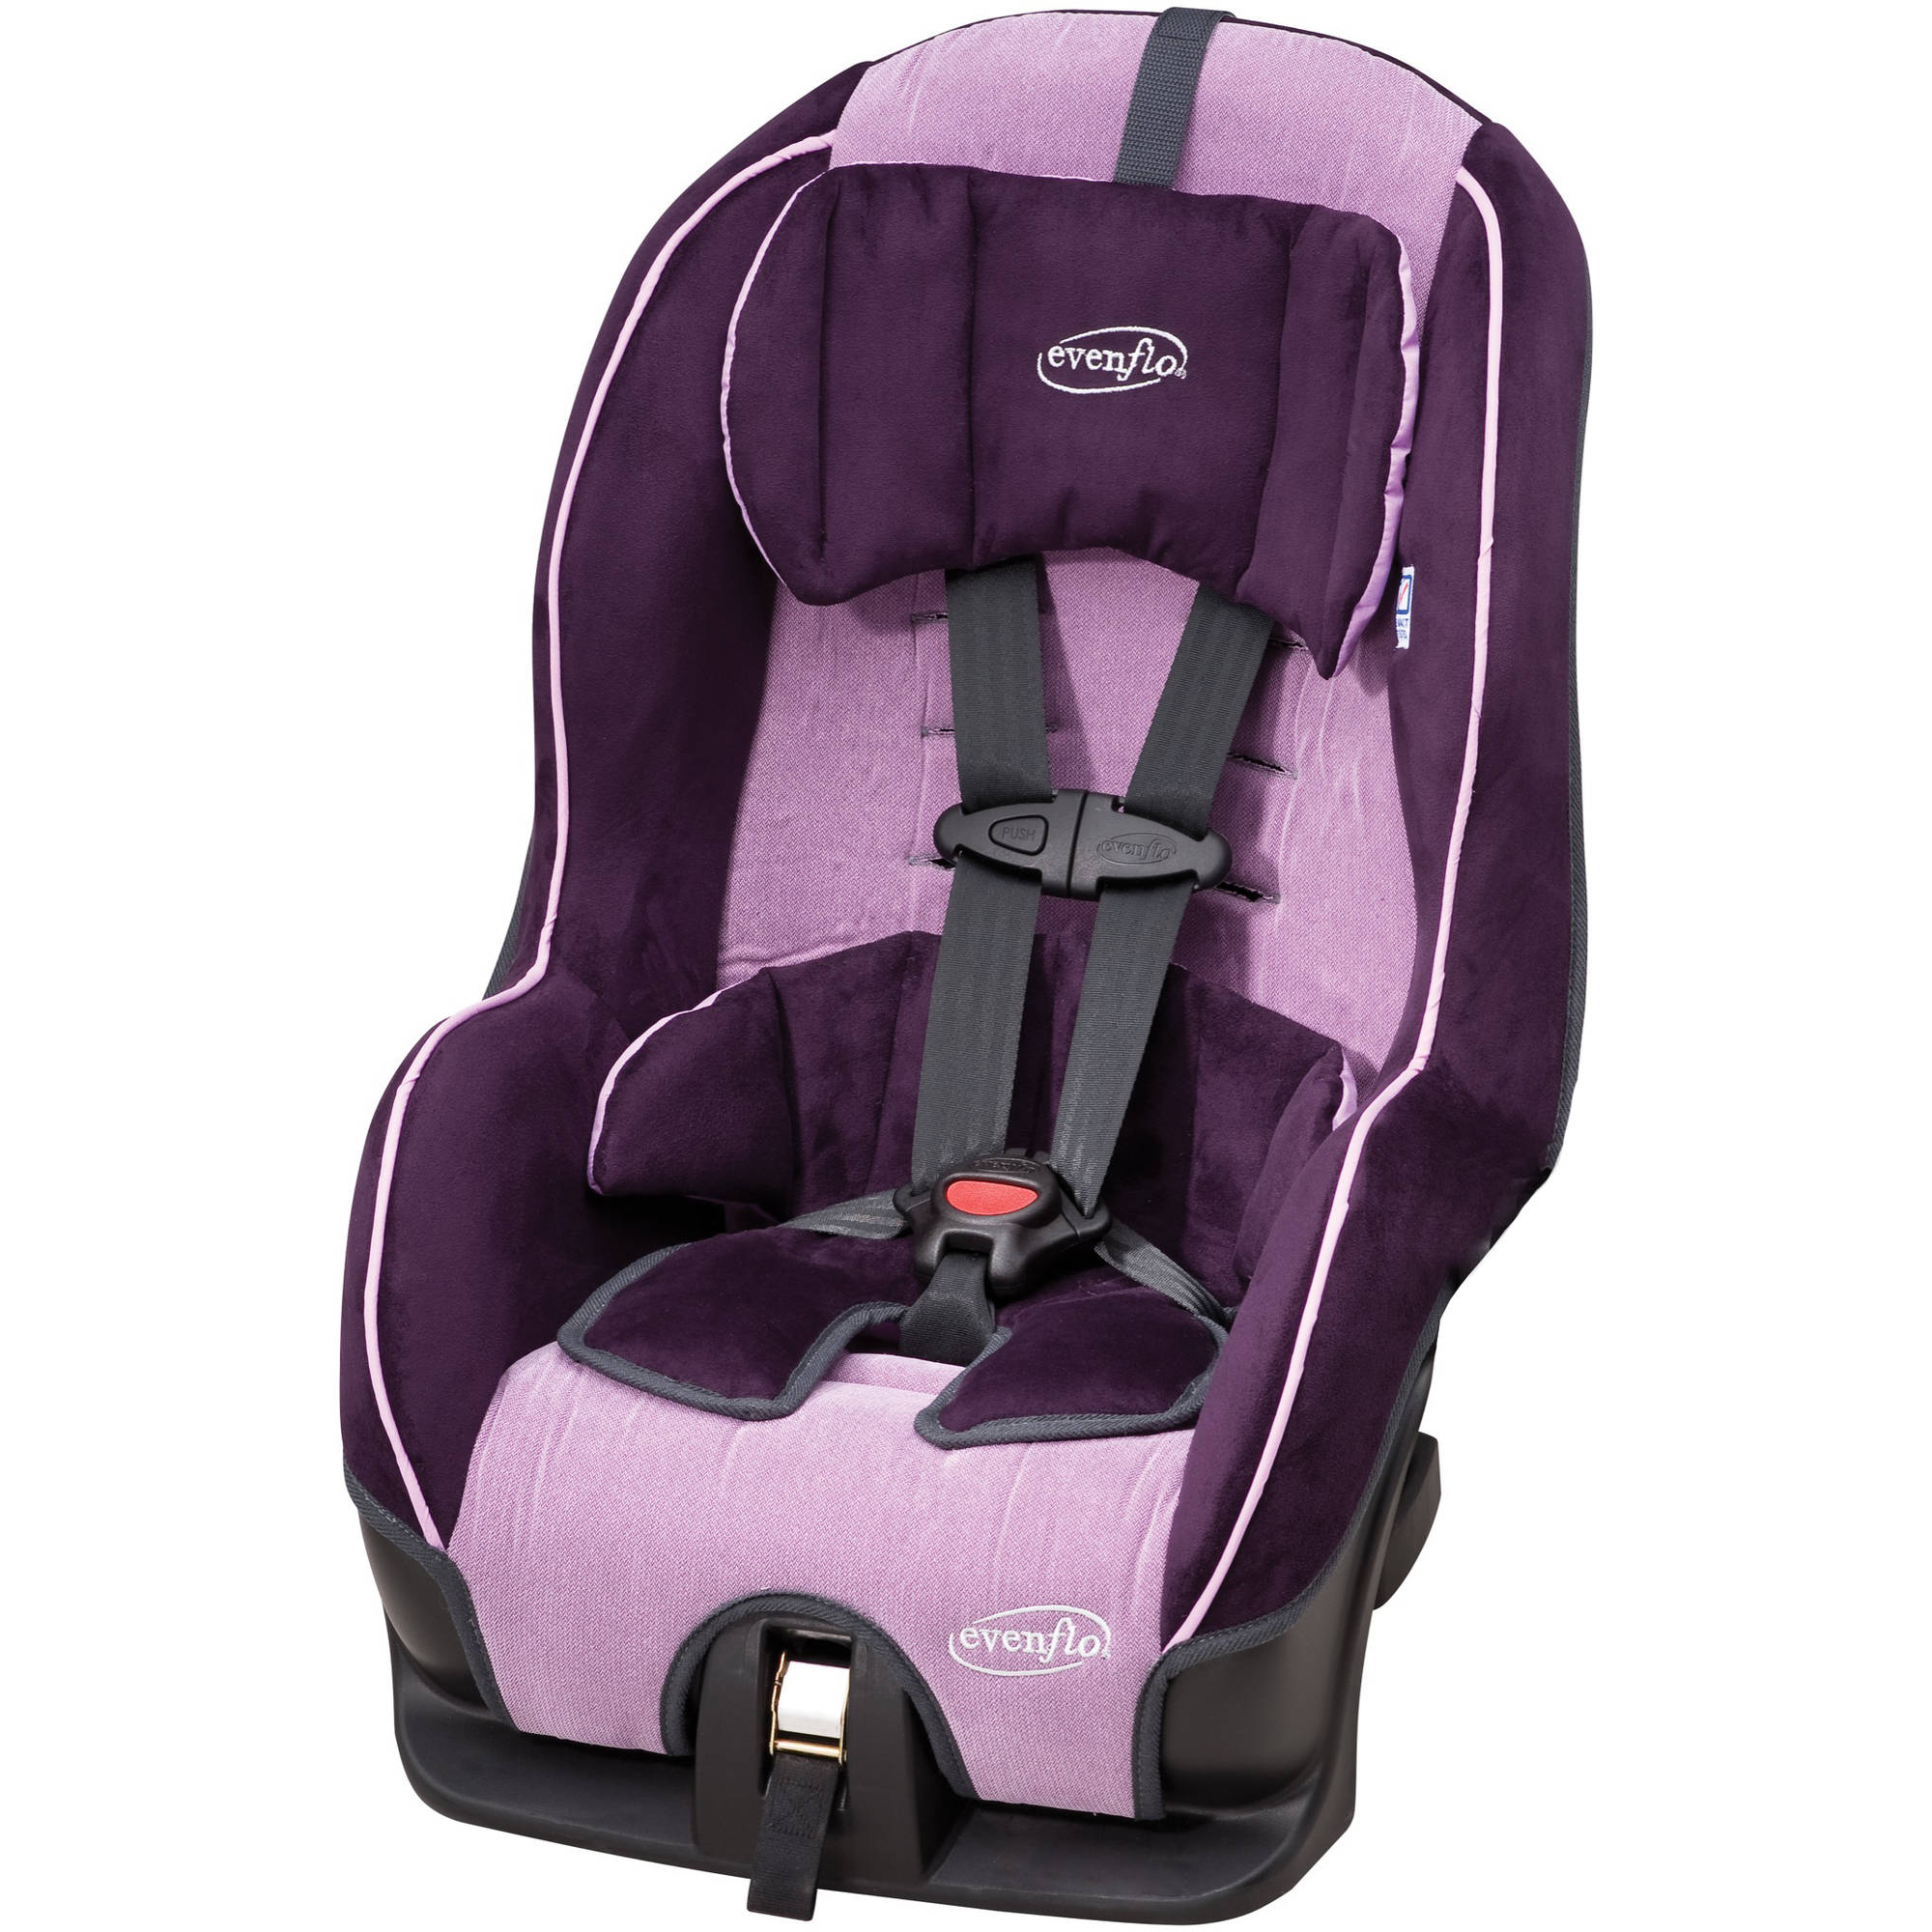 Evenflo - Tribute Convertible Baby Car Seat, Kristy